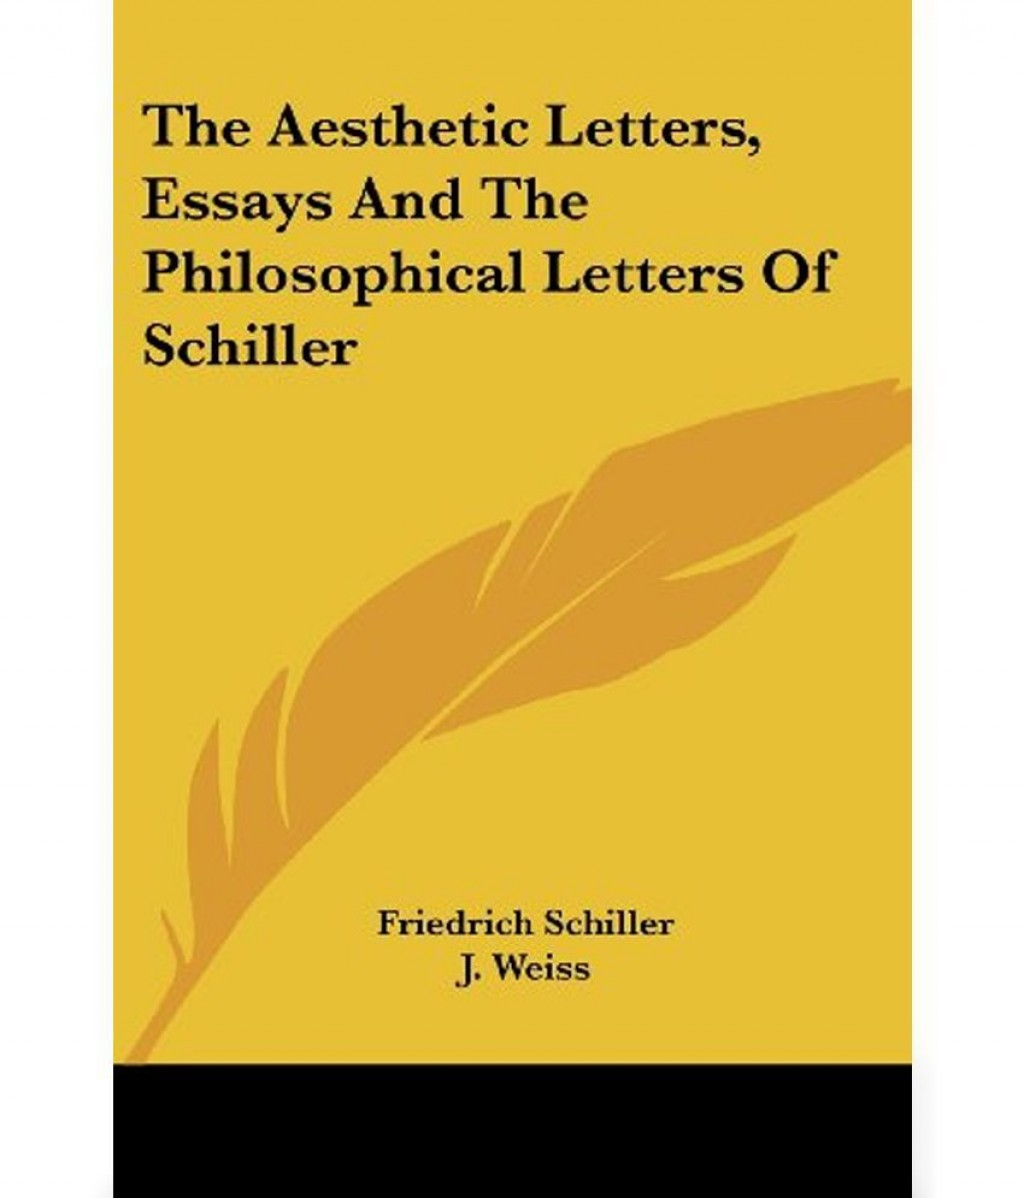 010 Essay Example The Aesthetic Letters Essays And Sdl905749925 Awful Schiller Friedrich Large